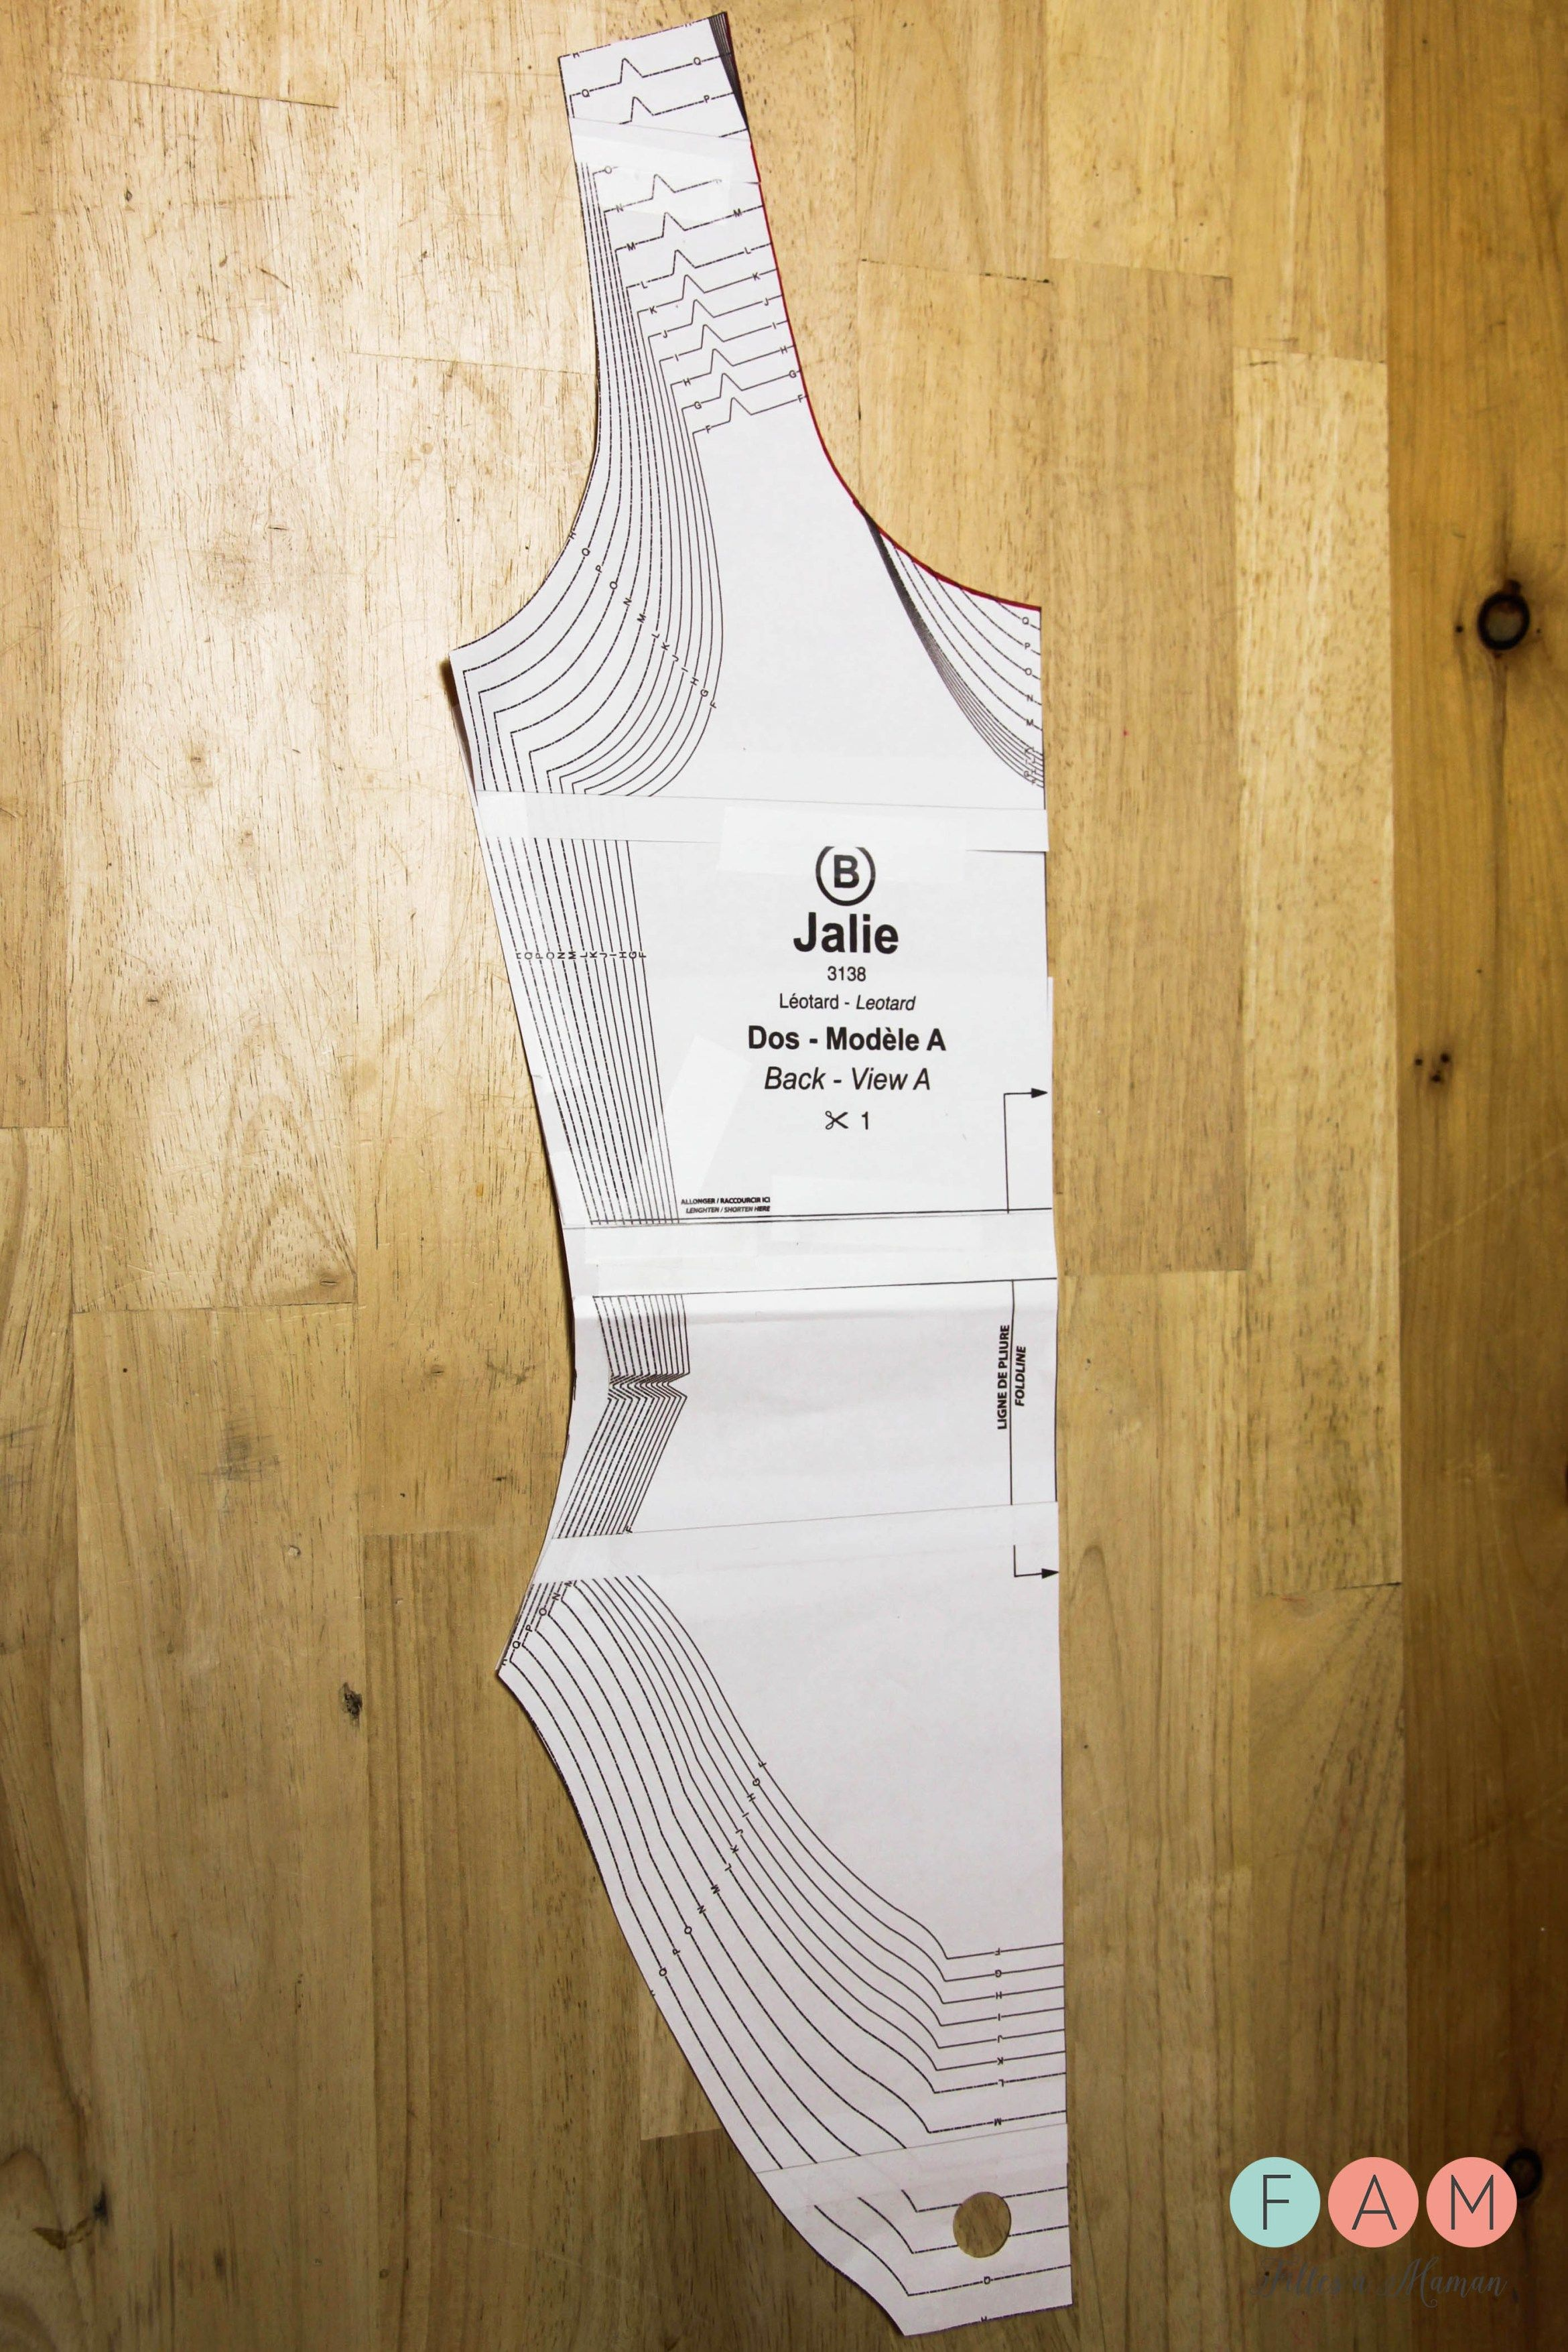 Jalie 3138 leotard-How color block a leotard | Projects to try ...